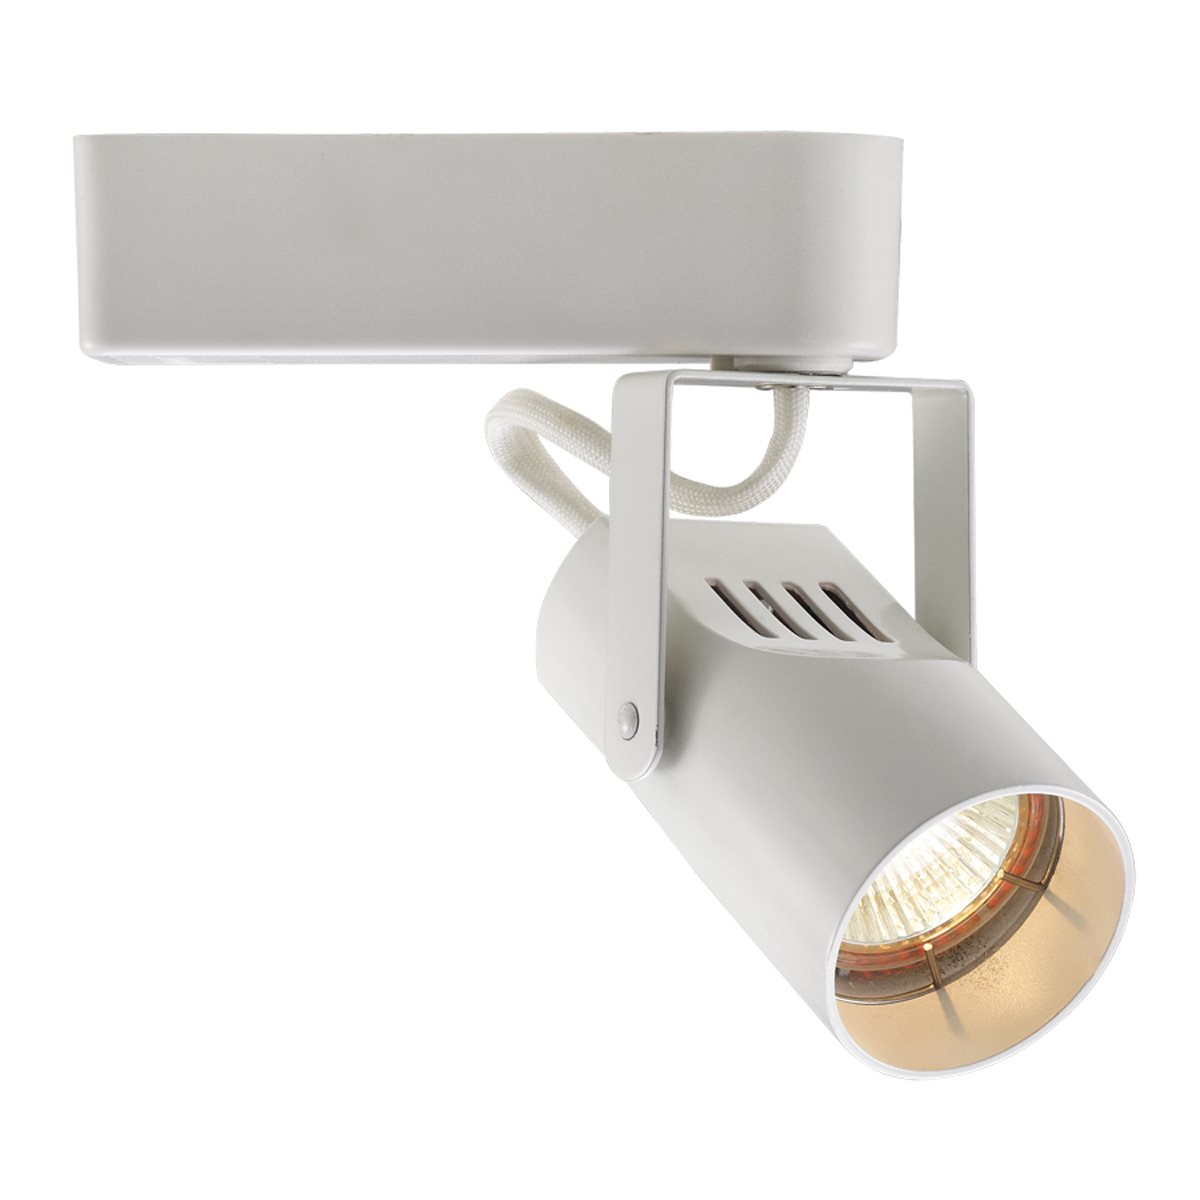 wac lighting  premium low voltage framing track light  - lhtl for use with l  j circuit system connector    wt white